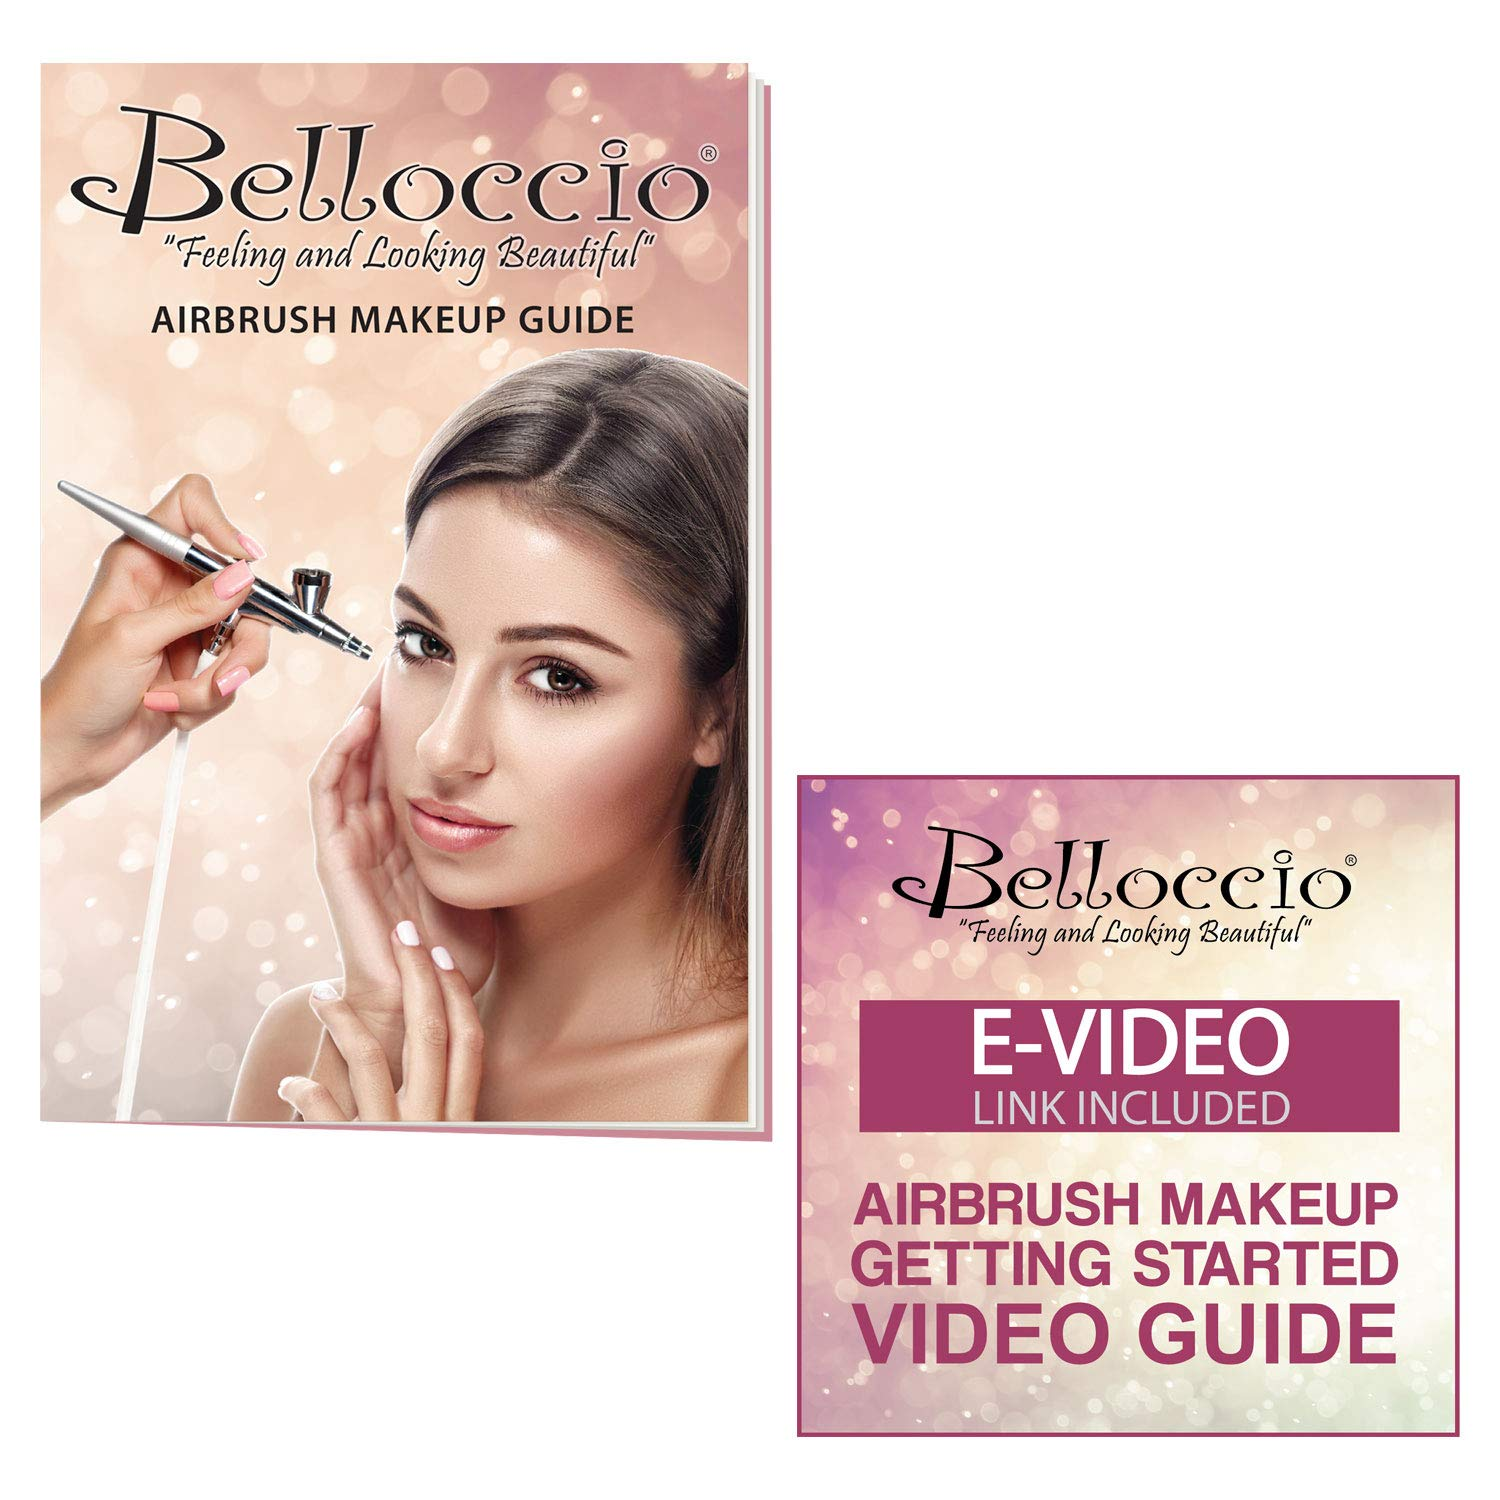 Belloccio Professional Beauty Airbrush Cosmetic Makeup System with 4 Tan Shades of Foundation in 1/4 Ounce Bottles - Kit Includes Blush, Bronzer and Highlighter and 3 Bonus Items and a Video Link by Belloccio (Image #5)